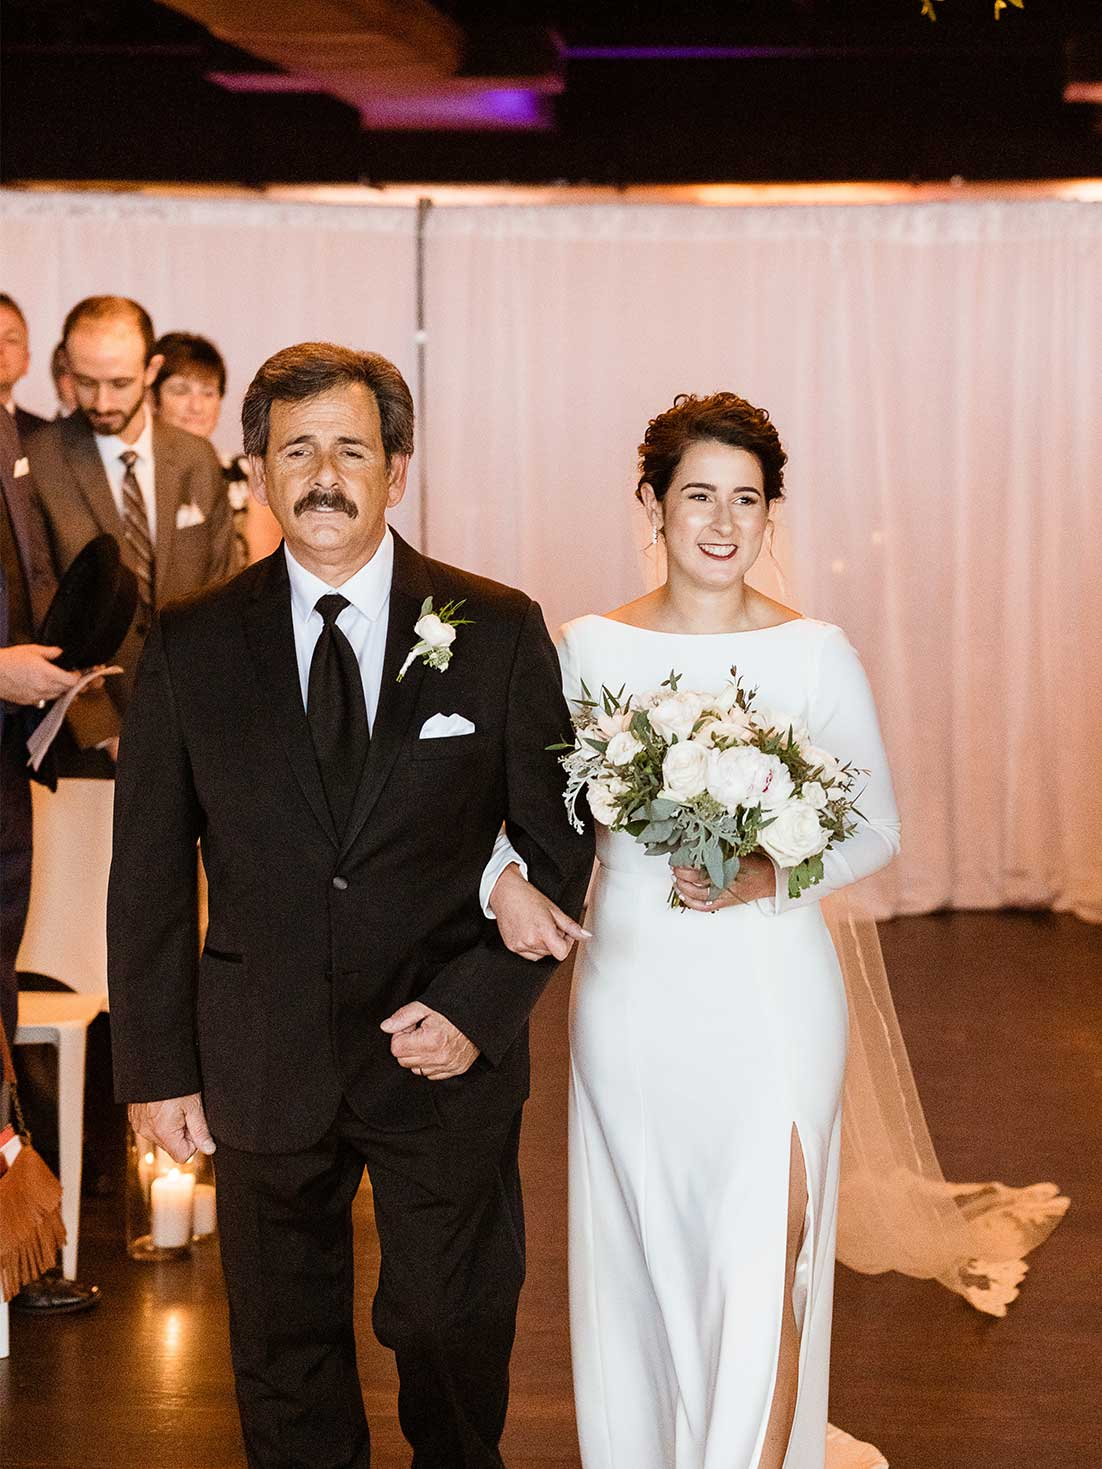 Smiling bride is escorted down the ceremony aisle by her father